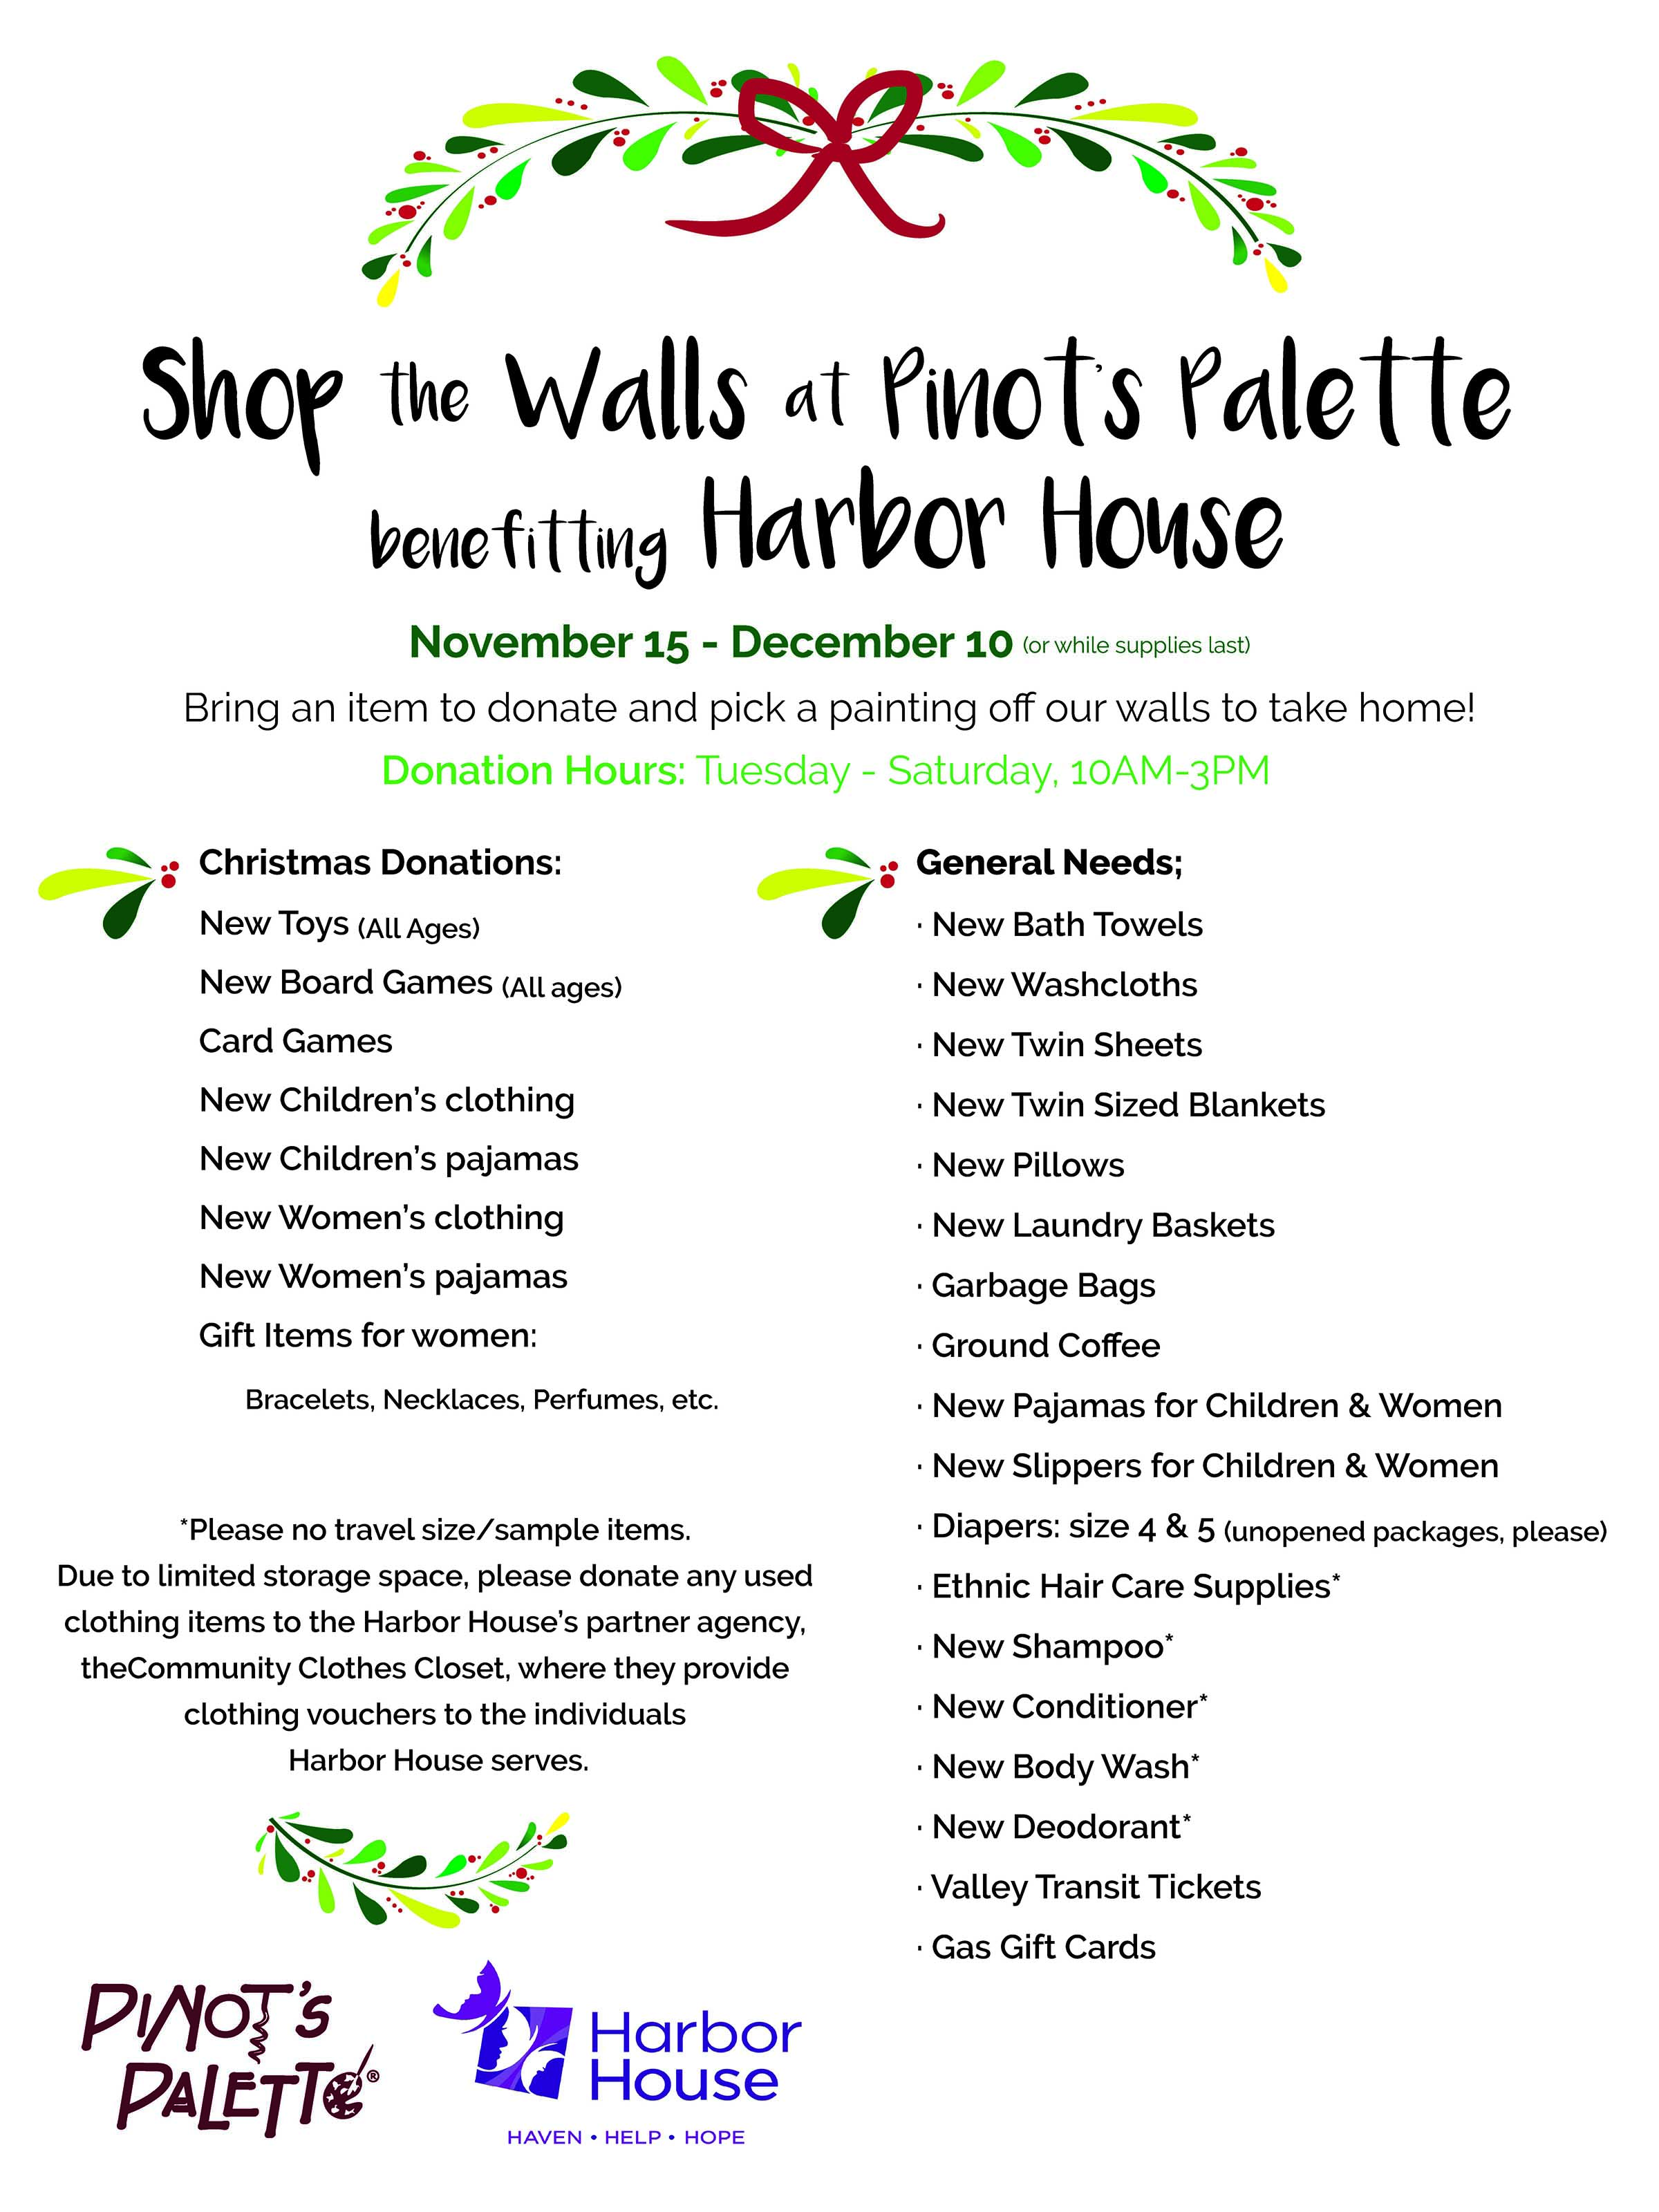 Shop our walls pinots palette beginning november 15th pinots palette 226 e college avenue appleton invites the fox valley community to shop our walls to benefit harbor house stopboris Gallery